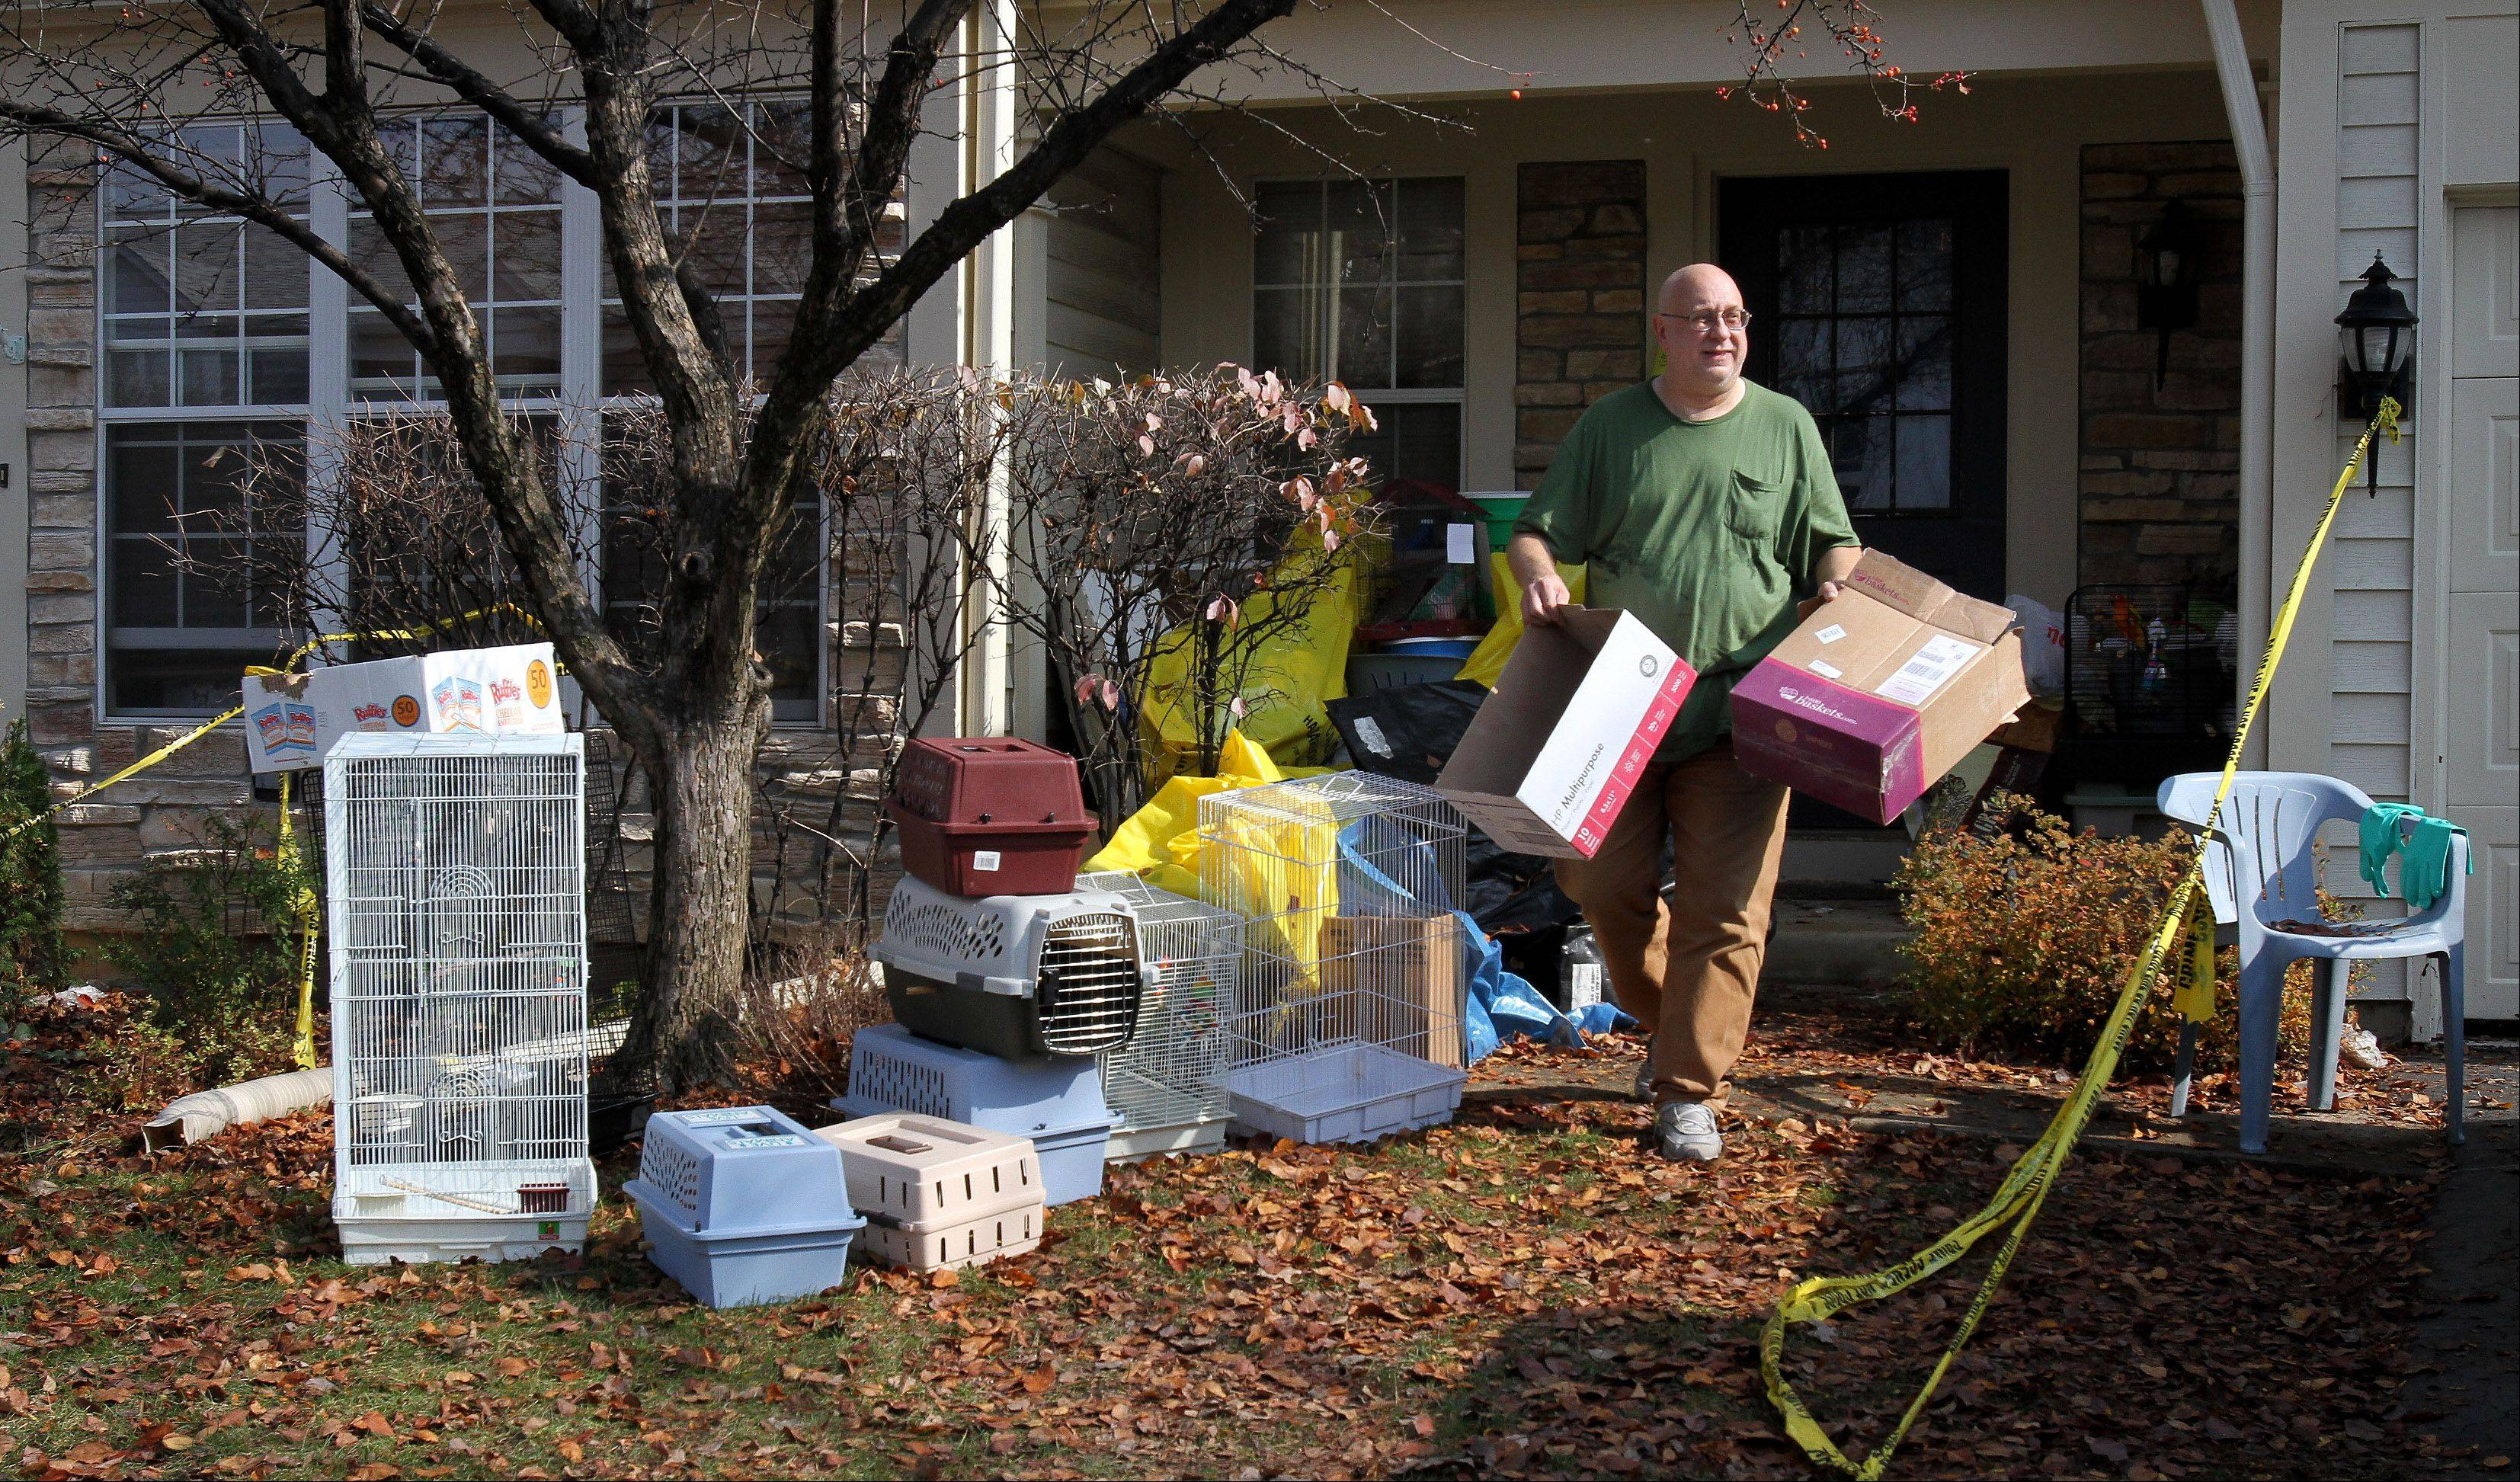 Dave Skeberdis, 57, of Aurora, removes items from his home, which housed 478 birds -- 120 of them dead -- as well as piles of garbage and bird feces three feet deep. People for the Ethical Treatment of Animals now is pushing the city of Aurora to press criminal charges against Skeberdis for cruelty to animals.